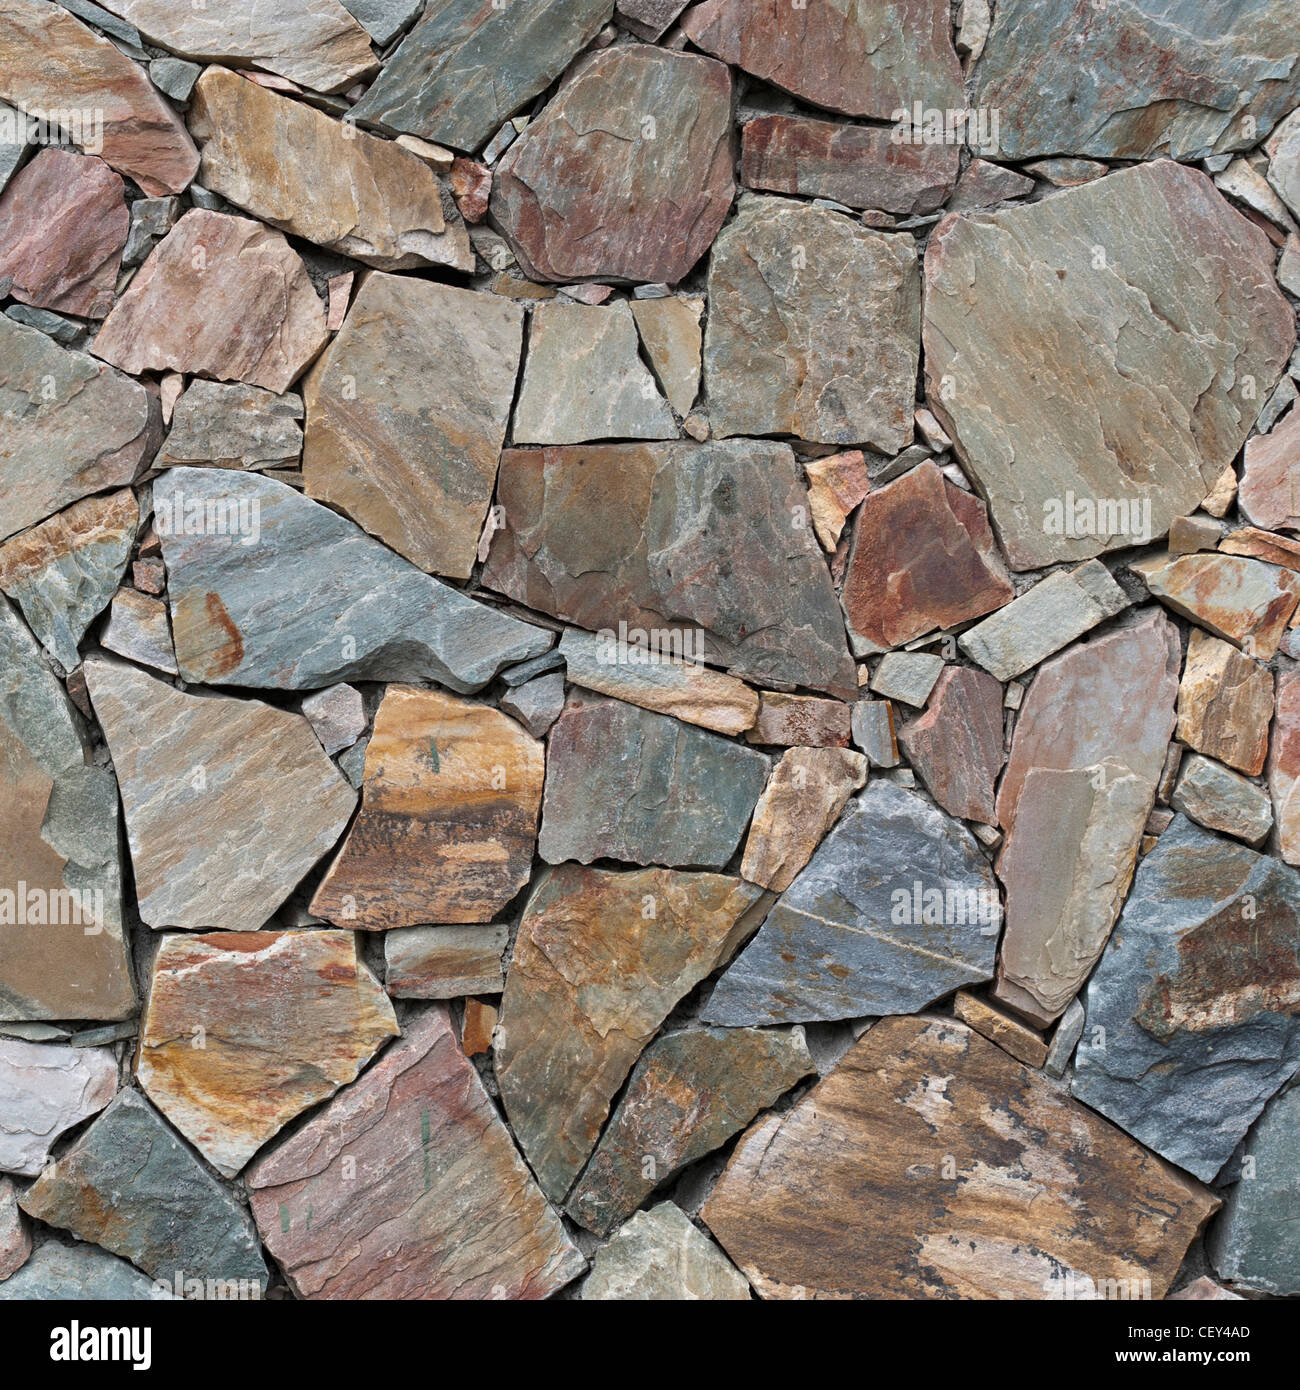 flat rock laid for a path; alberta, canada - Stock Image